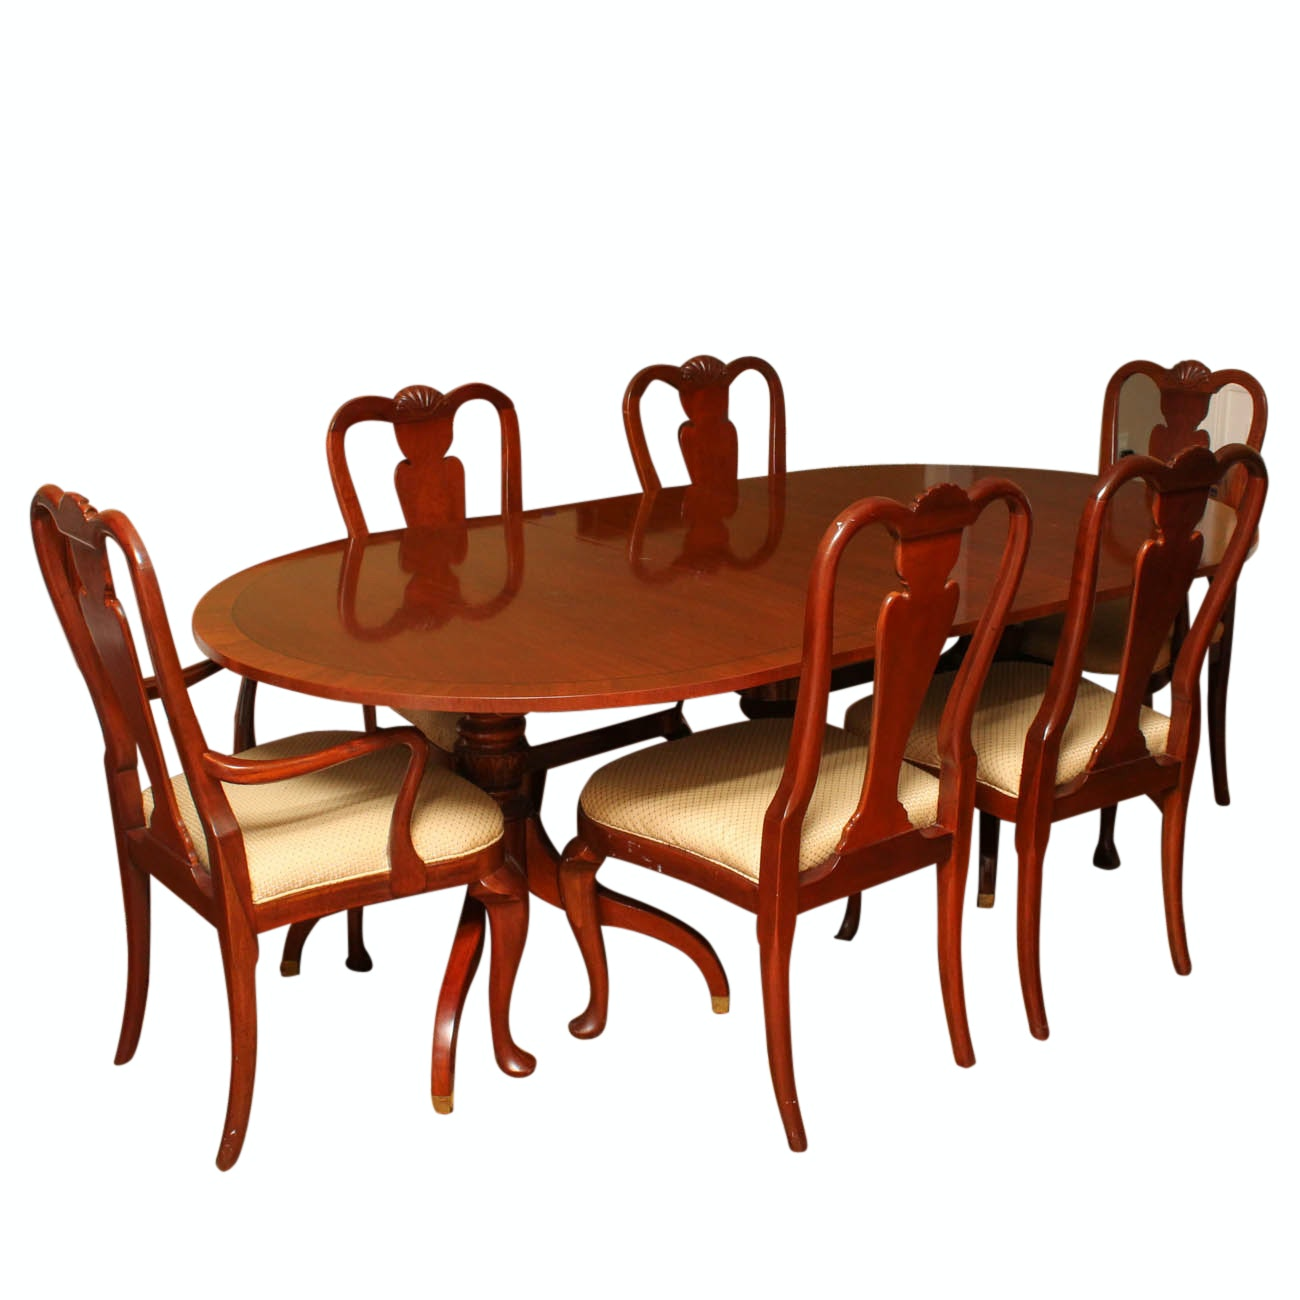 Baker Furniture, Milling Road Collection, Leaf Dining Table and Chairs